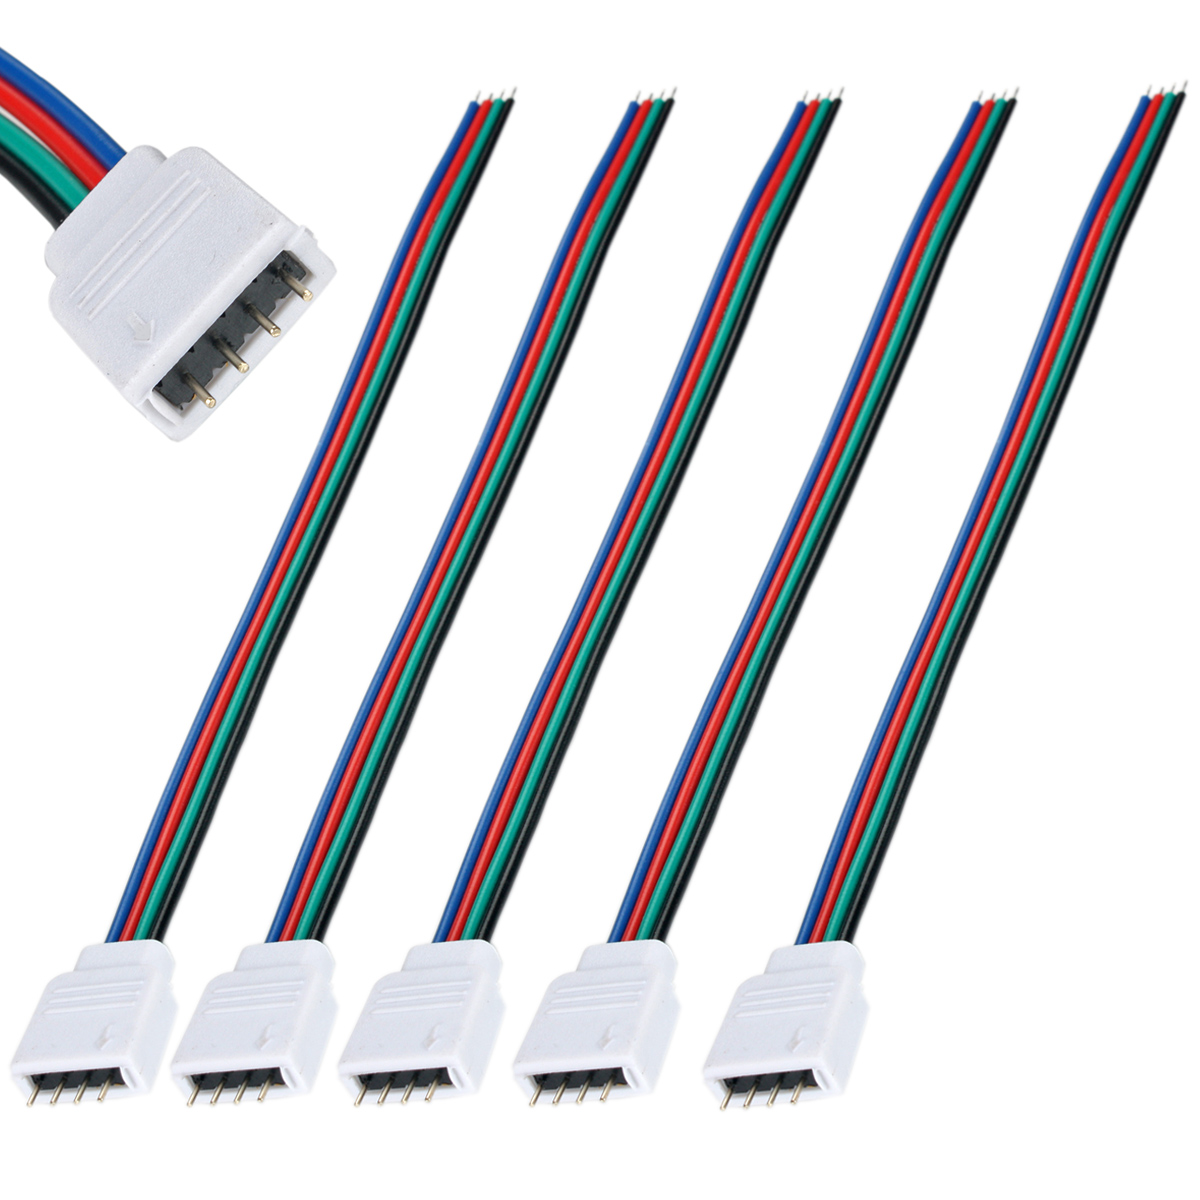 5 10pcs Rgb Led Strip Light Wire Connector Adapter Cable Clip Pcb Connectors Wiring For Single Color 5050 Smd Ebay 10mm Wide Compatible